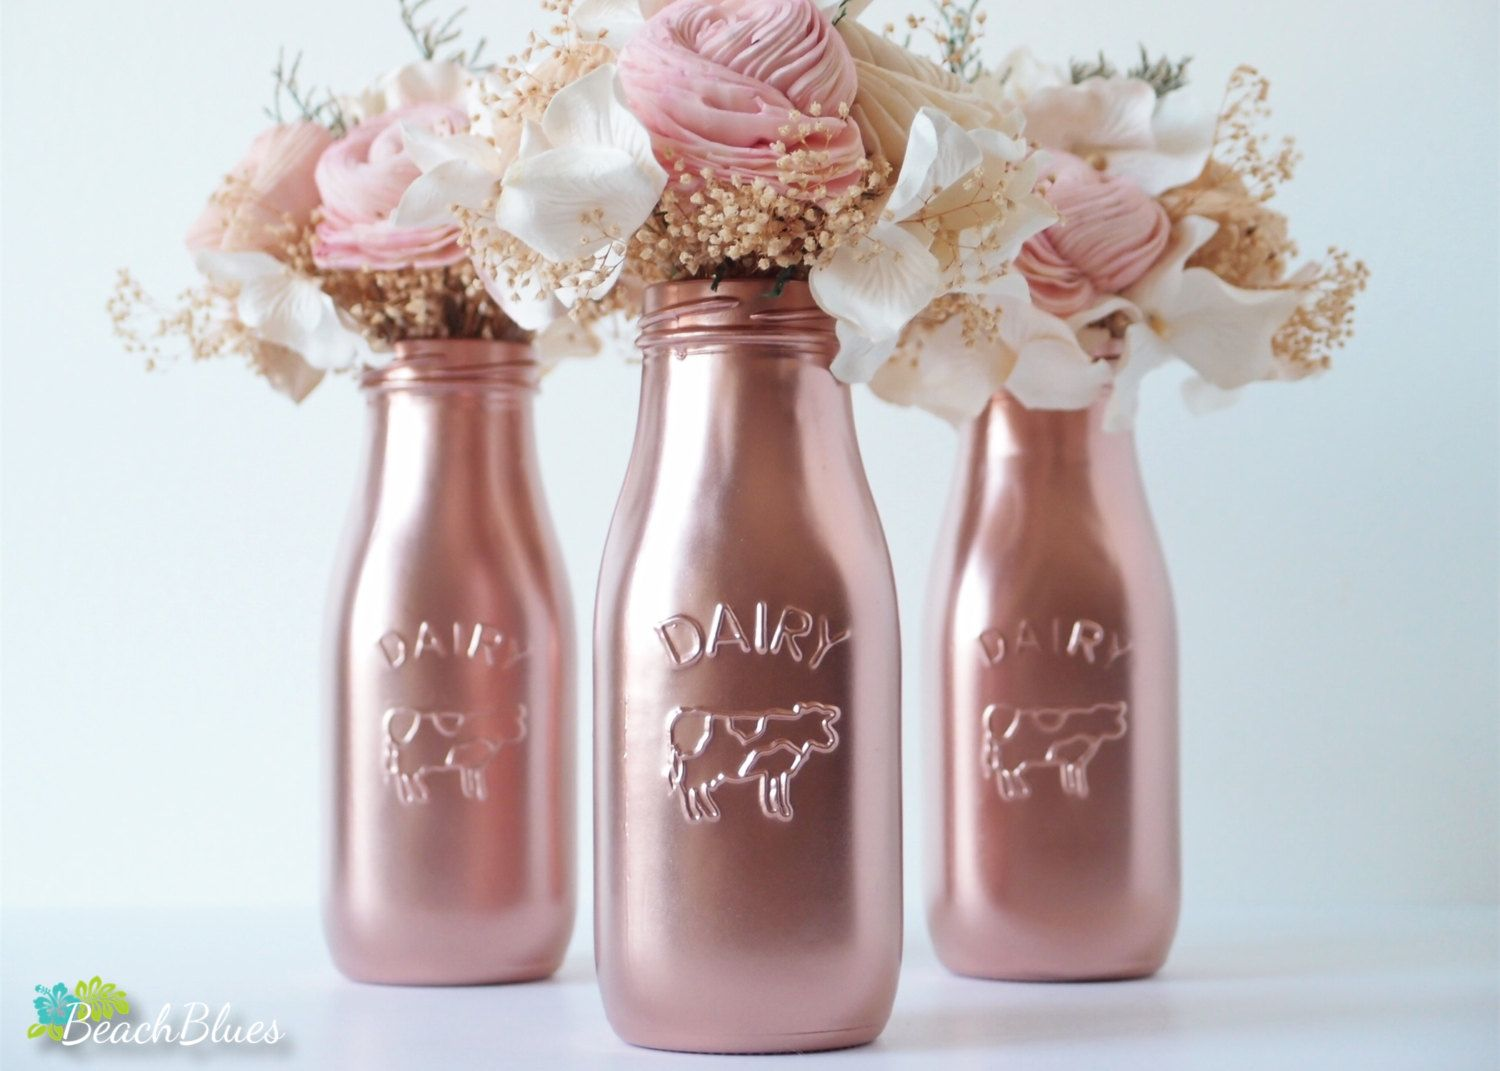 Mothers day decor copper painted milk bottles 3 baby shower copper painted milk bottles baby shower decor wedding decor home decor vase rose gold decor pink reviewsmspy